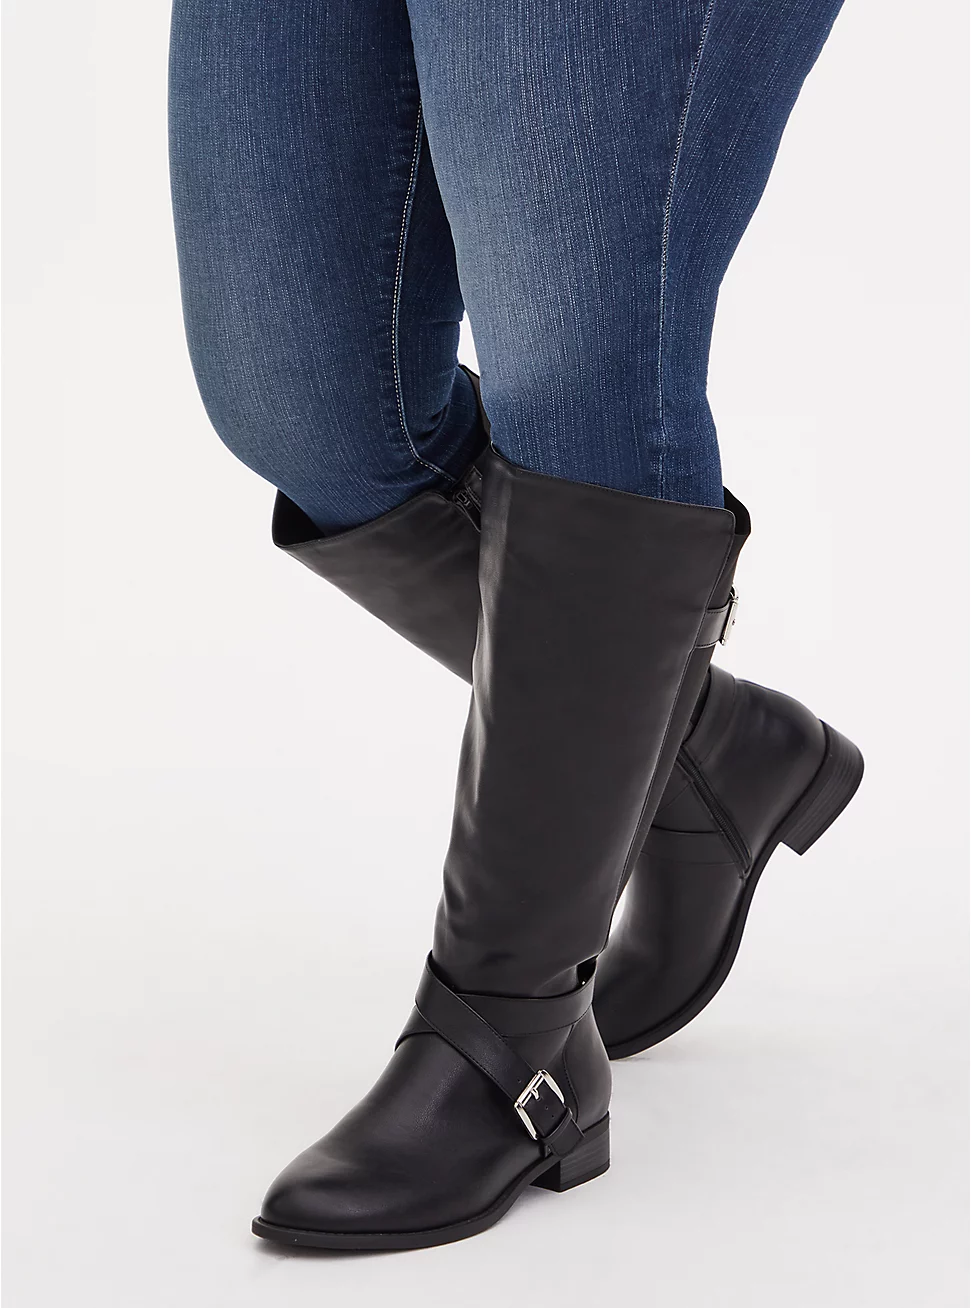 Brooke - Black Faux Leather Buckle Knee-High Boot